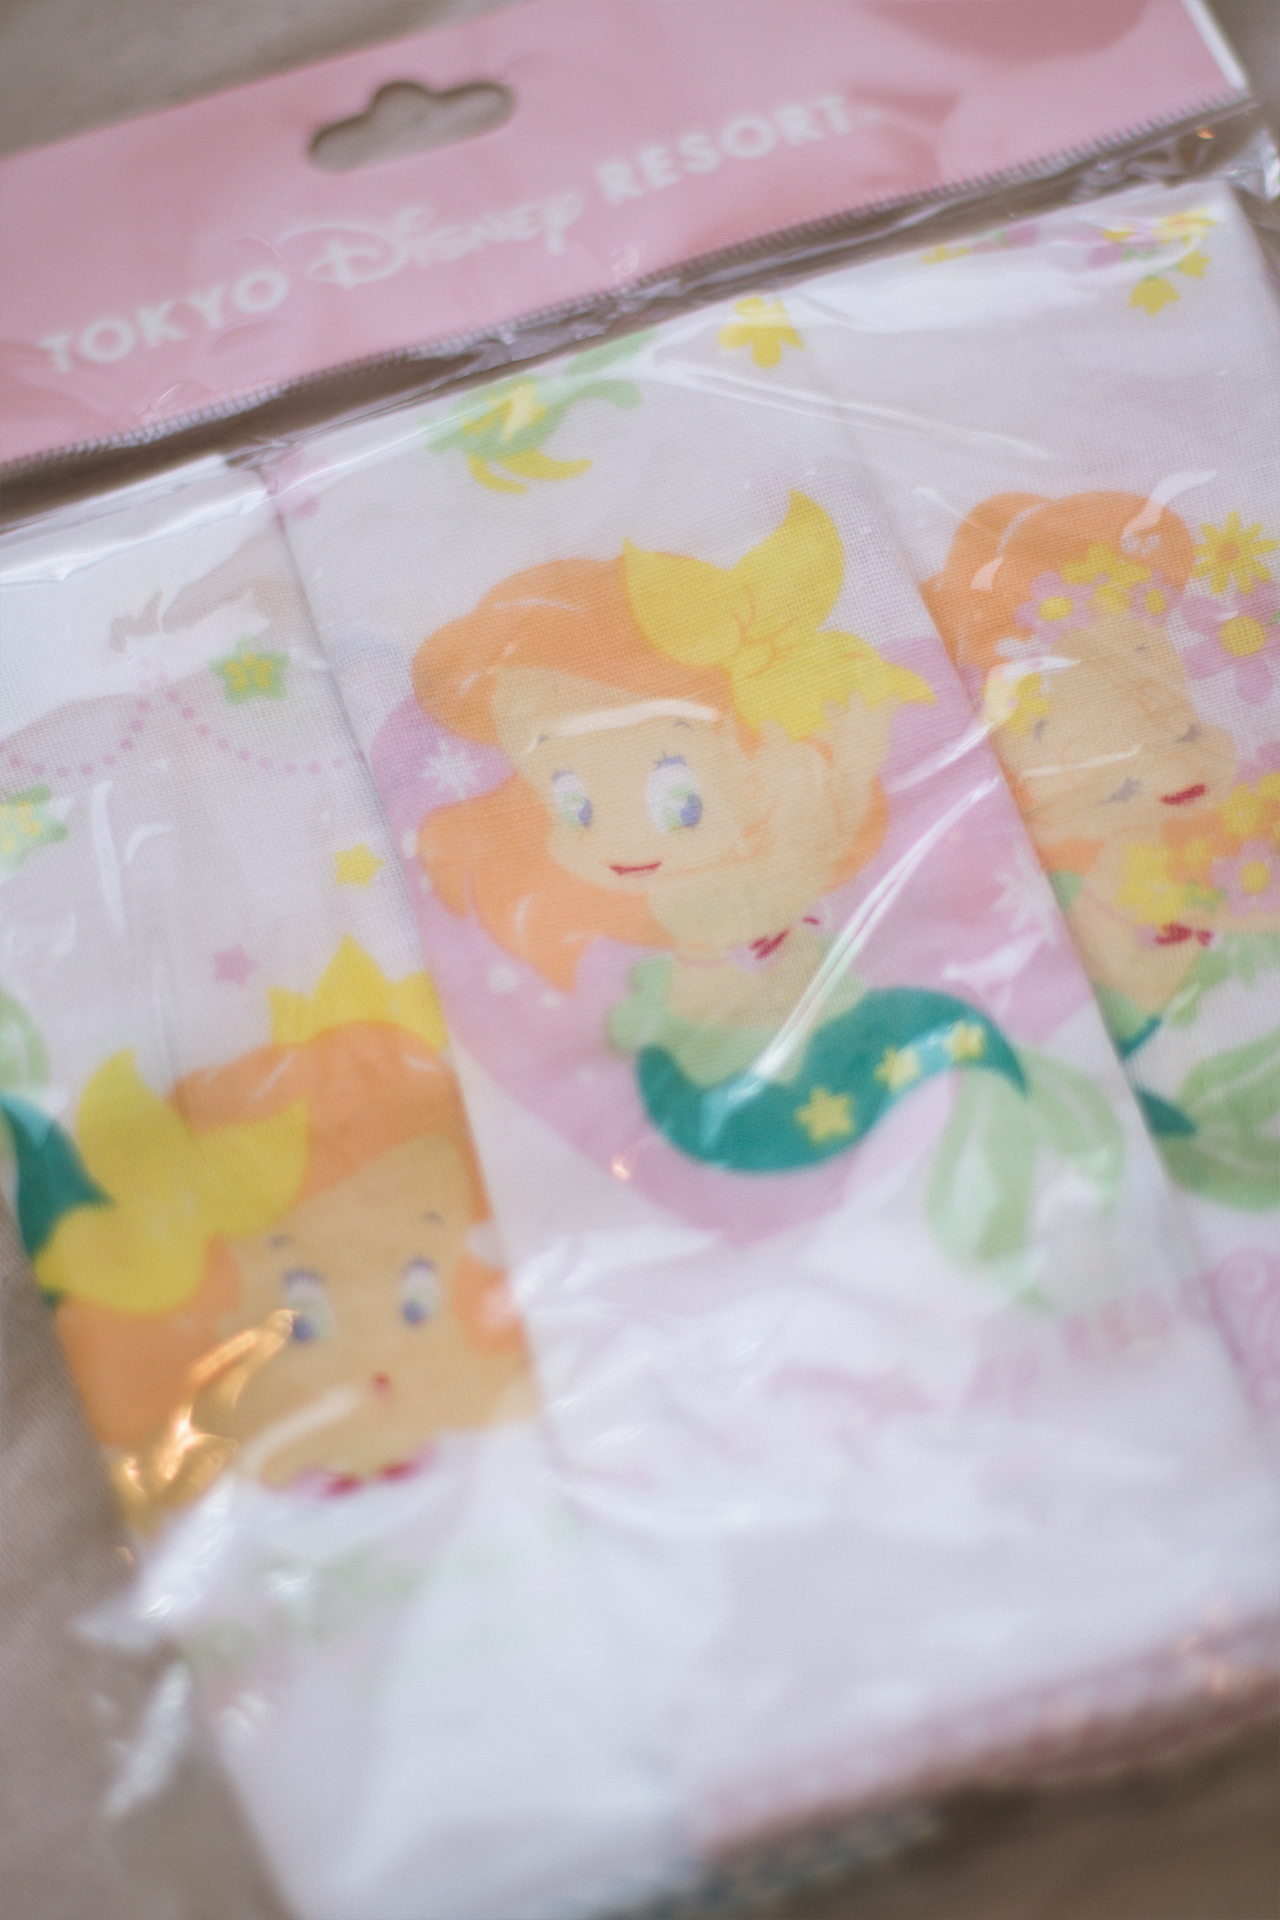 Here's the cute baby Ariel handkerchief I picked up.